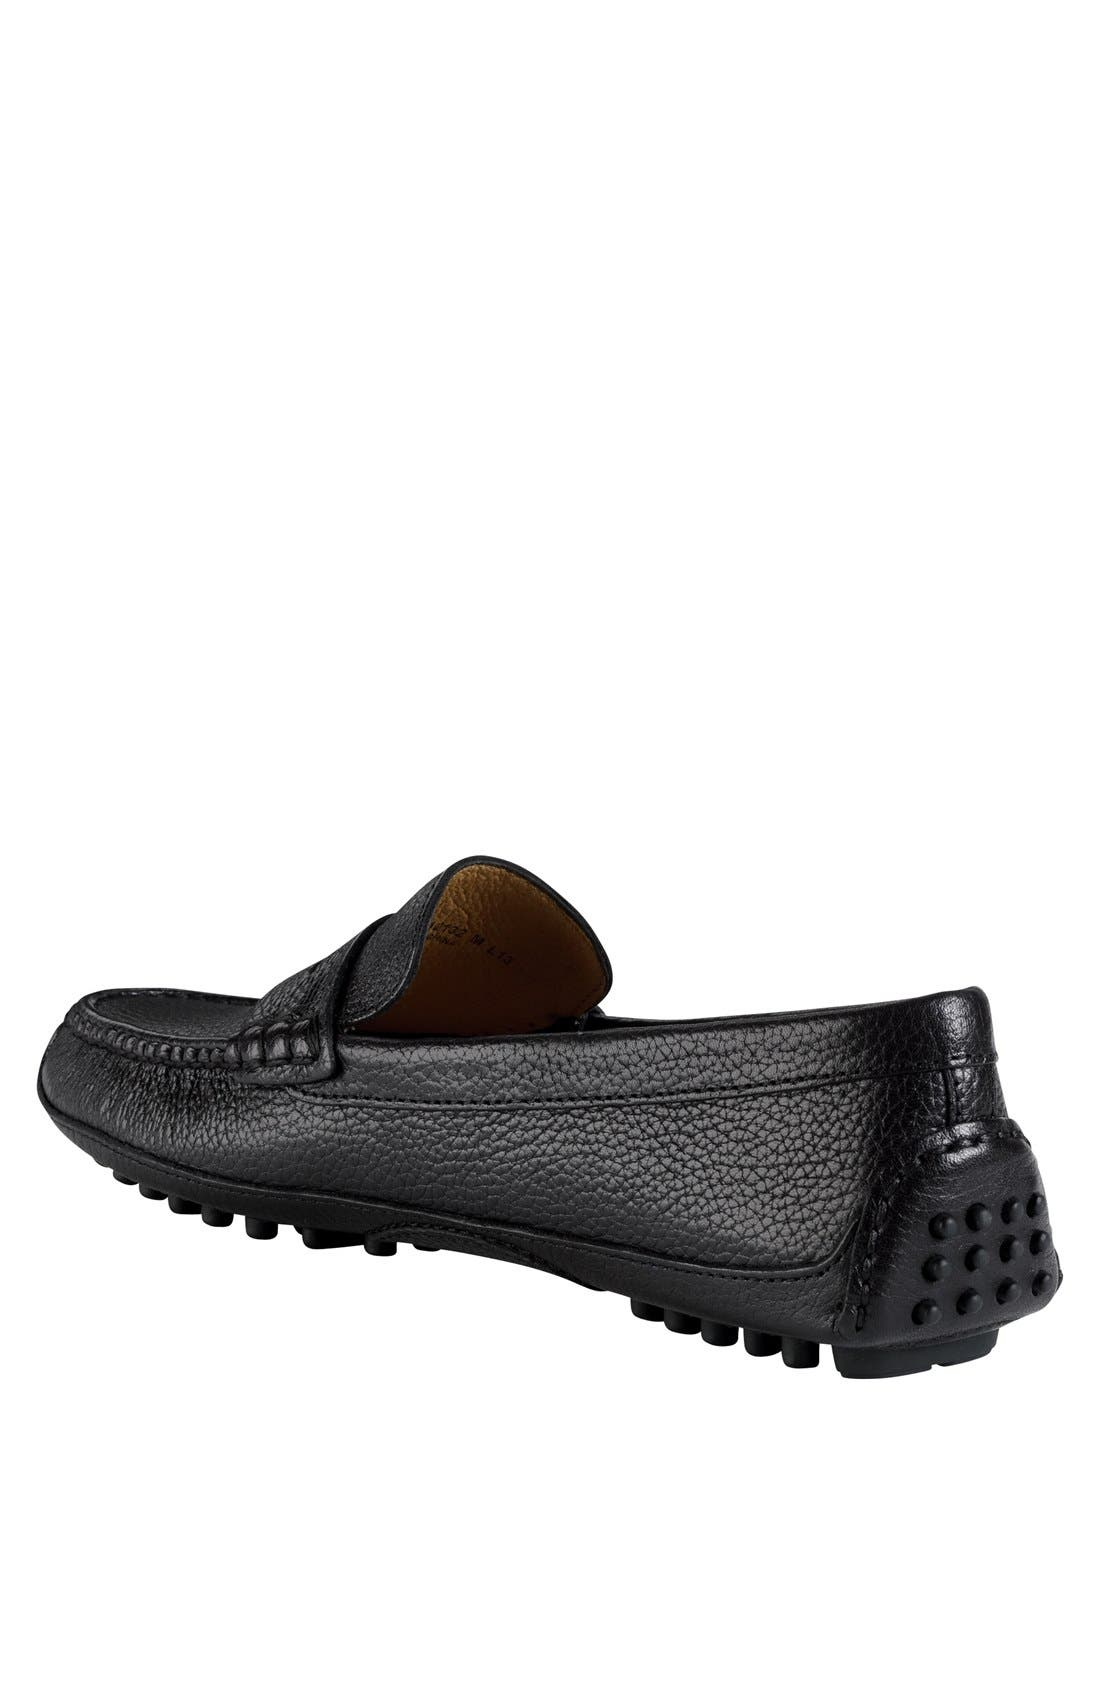 COLE HAAN, 'Grant Canoe' Penny Loafer, Alternate thumbnail 3, color, 001